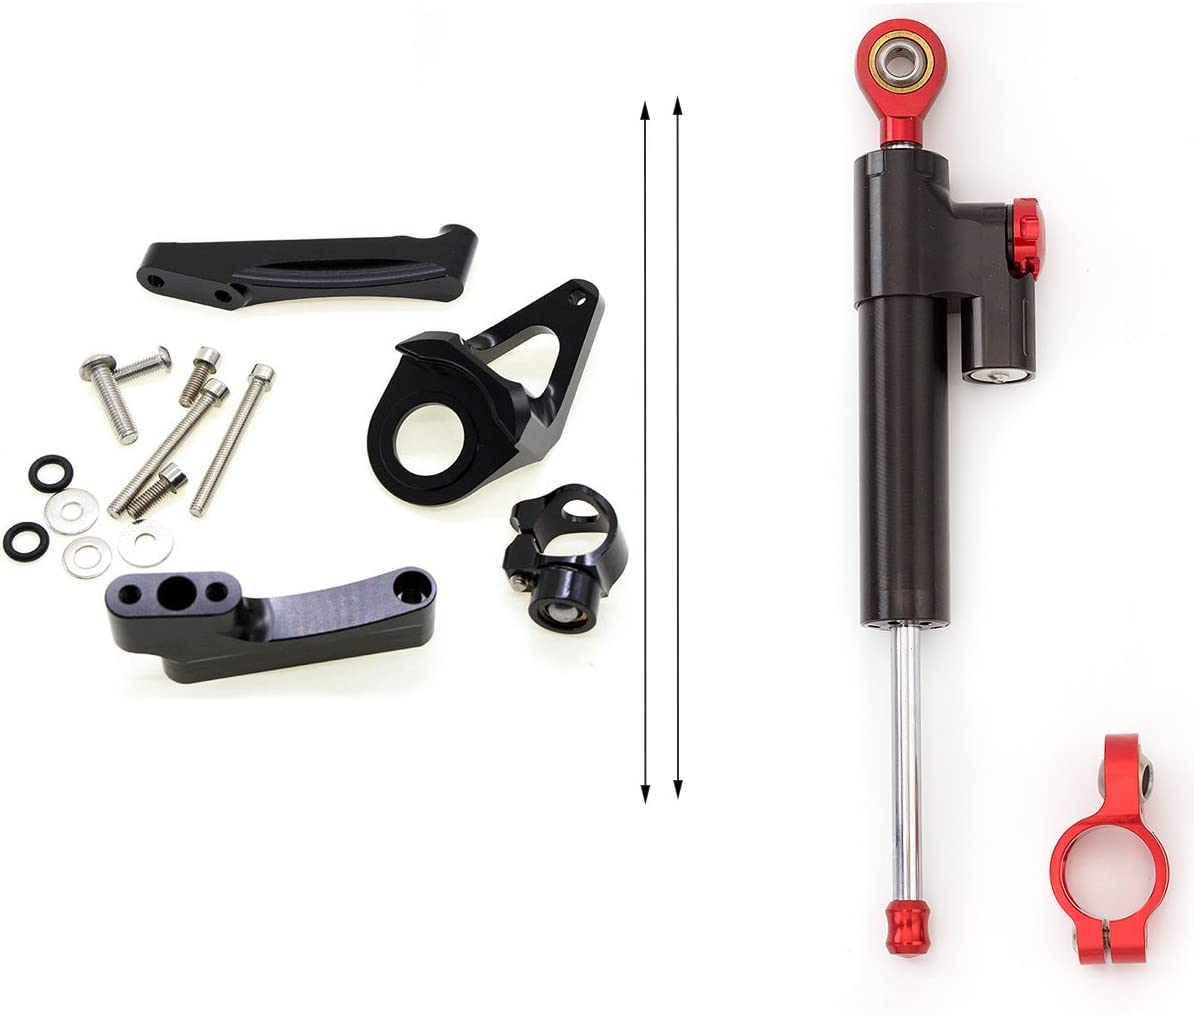 FXCNC Racing Motorcycle CNC Steering Damper Stabilizer Buffer Control Bar With Mounting Bracket Kit Full Set Fit For Suzuki Hayabusa GSXR1300 1998-2016